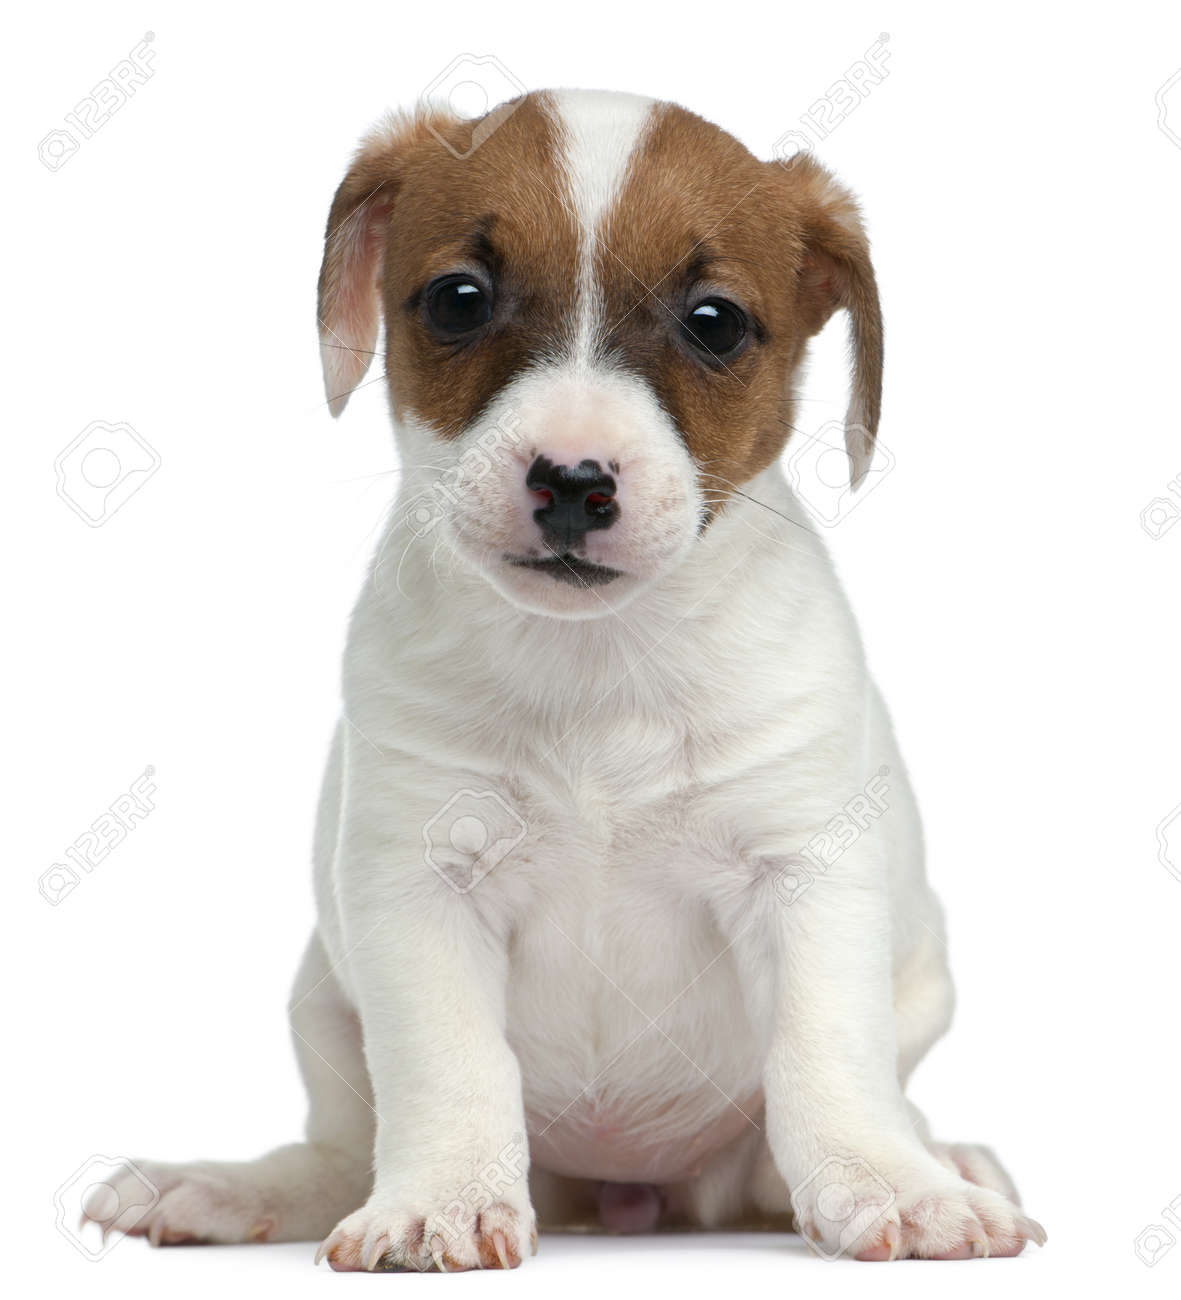 Jack Russell Terrier puppy, 7 weeks old, sitting in front of white background Stock Photo - 9151318